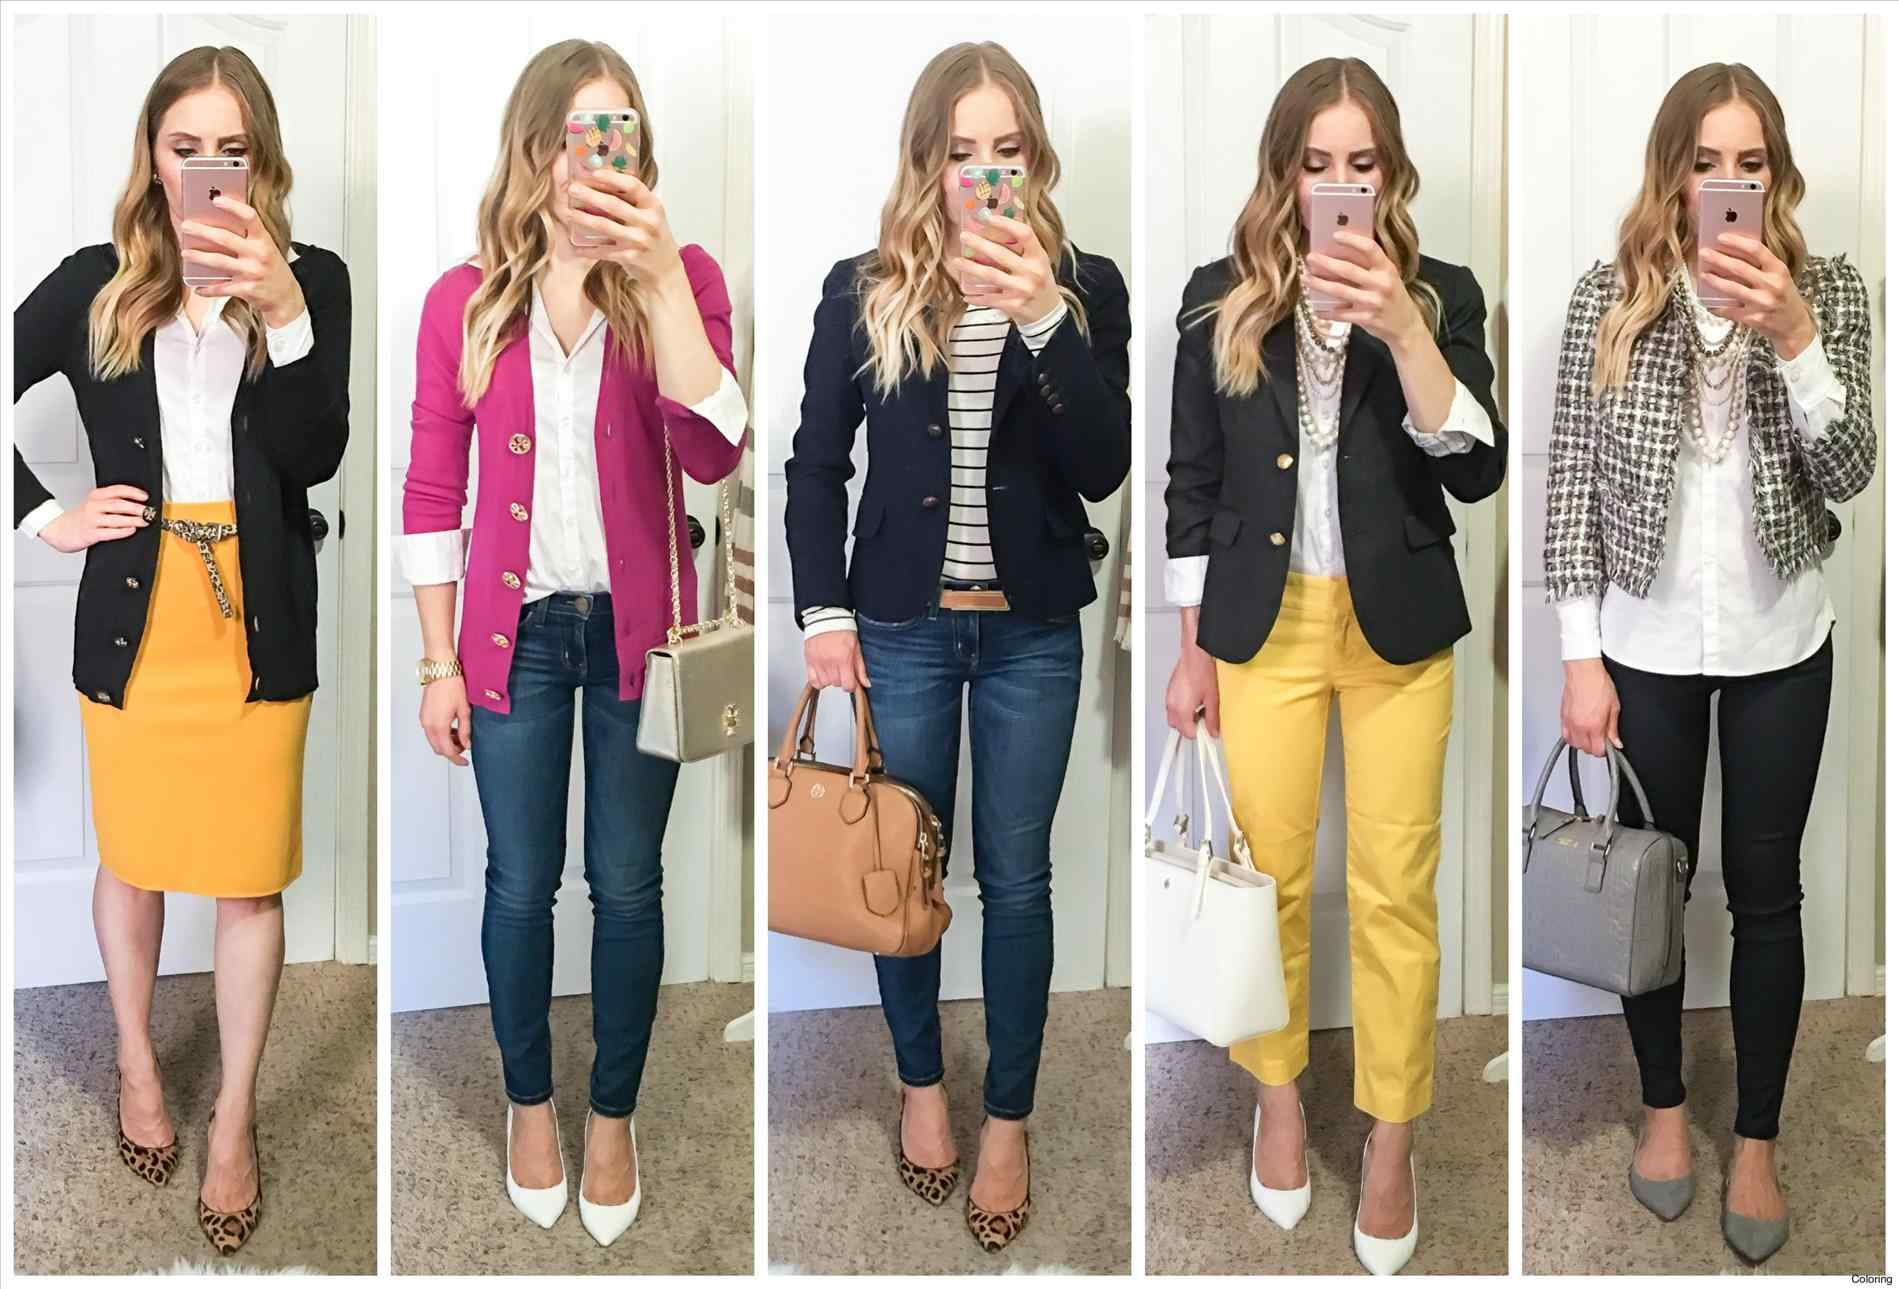 business casual women examples photo - 1